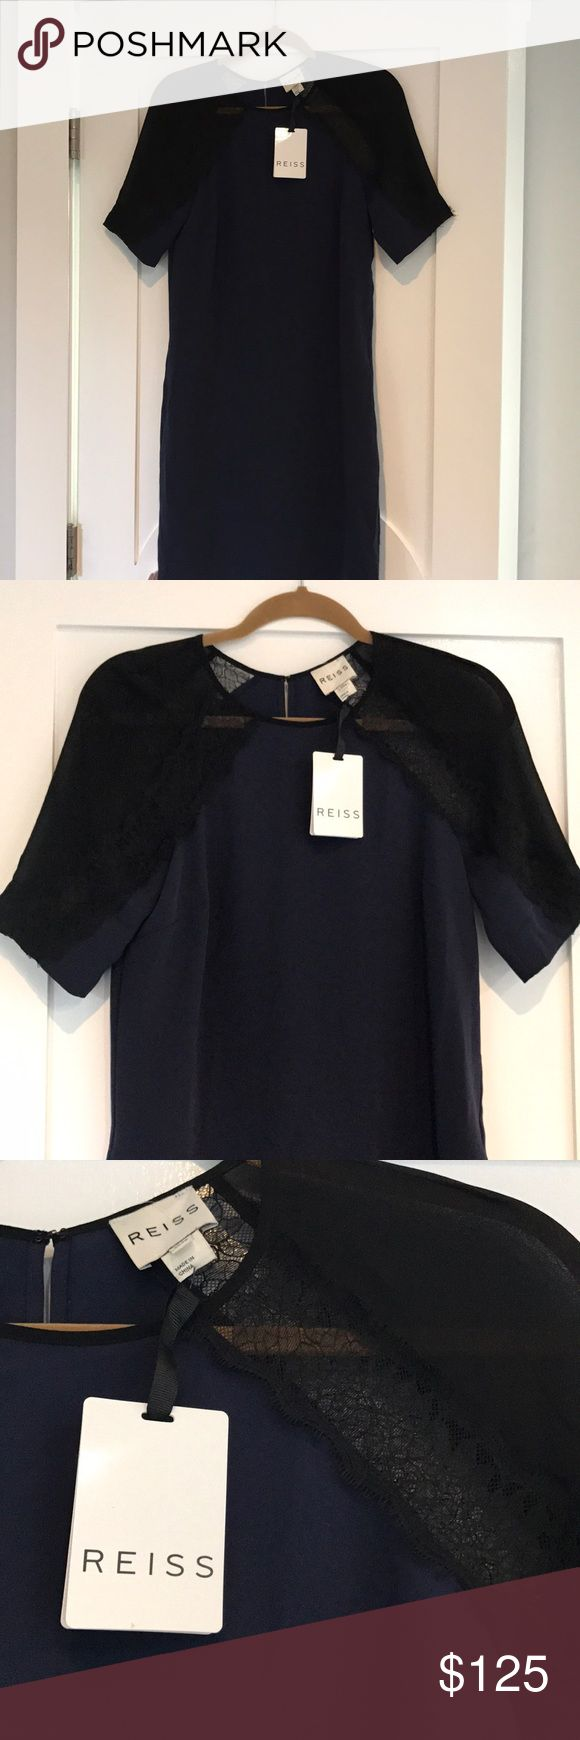 Reiss Lace Dress Beautiful Reese dress in a deep blue with black lace sleeves. The dress has pockets! Length is just below the knee. Size 4. Never worn with tags still attached showing original price of $295. (SK43) Reiss Dresses Midi